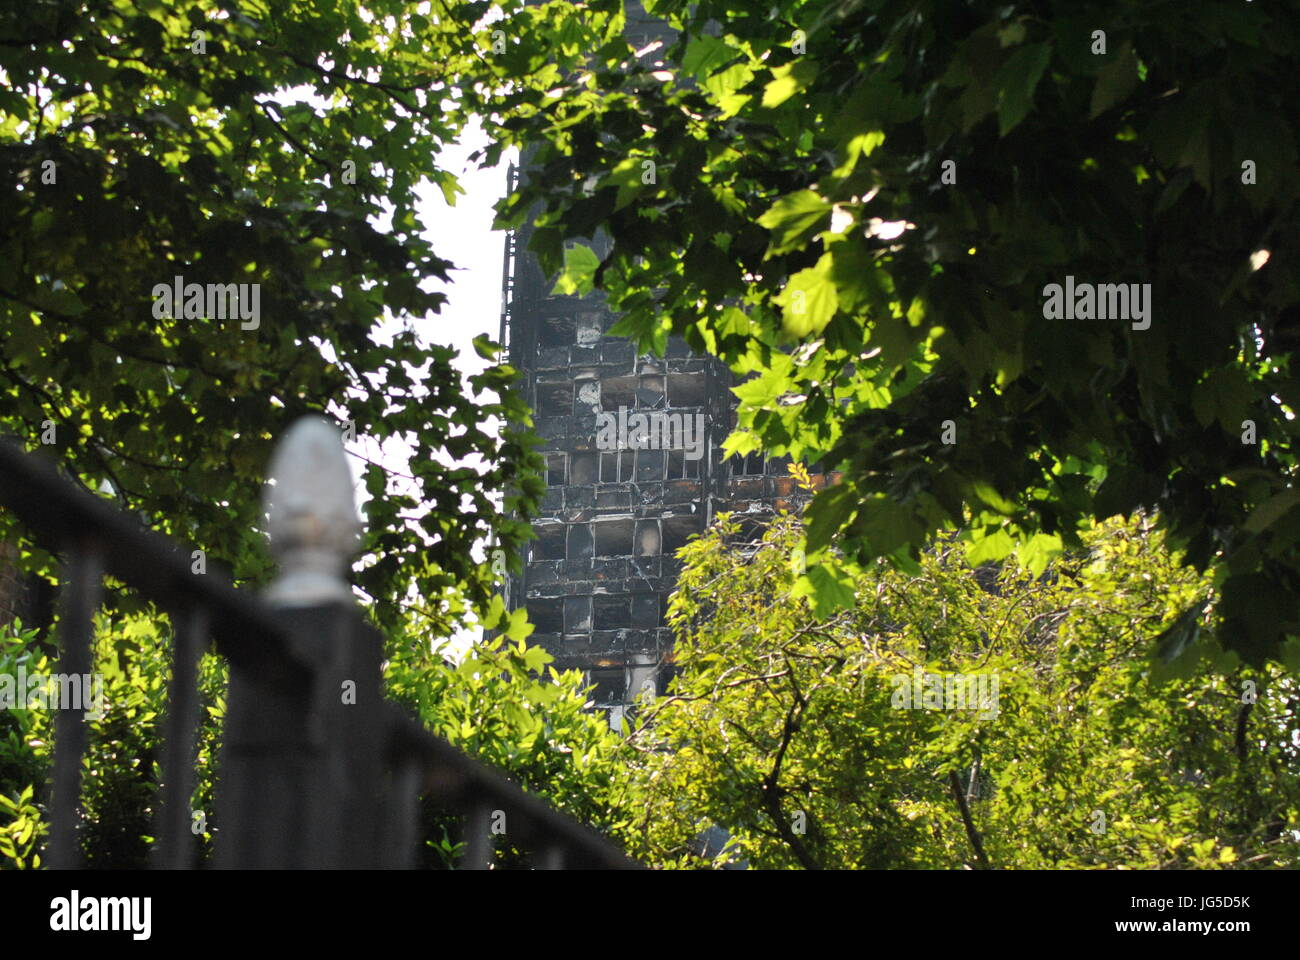 Grenfell Tower Fire, Leafy View Through to Burned Remains of Building, 14th June, 2017. Grenfell erupted in flames, - Stock Image